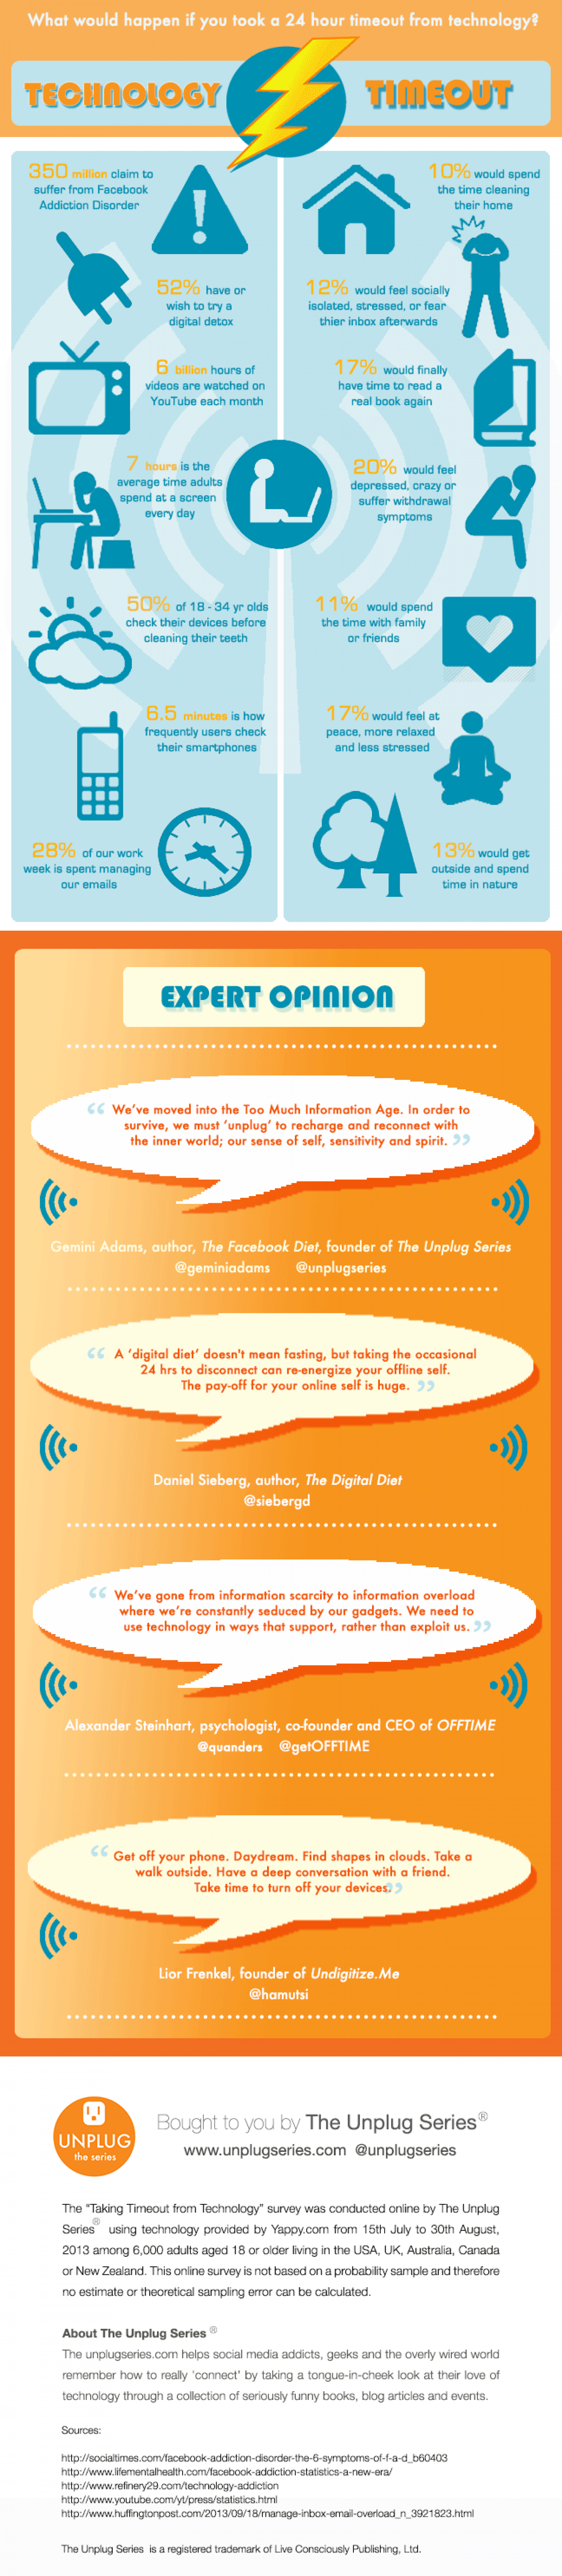 Taking Timeout from Technology Infographic